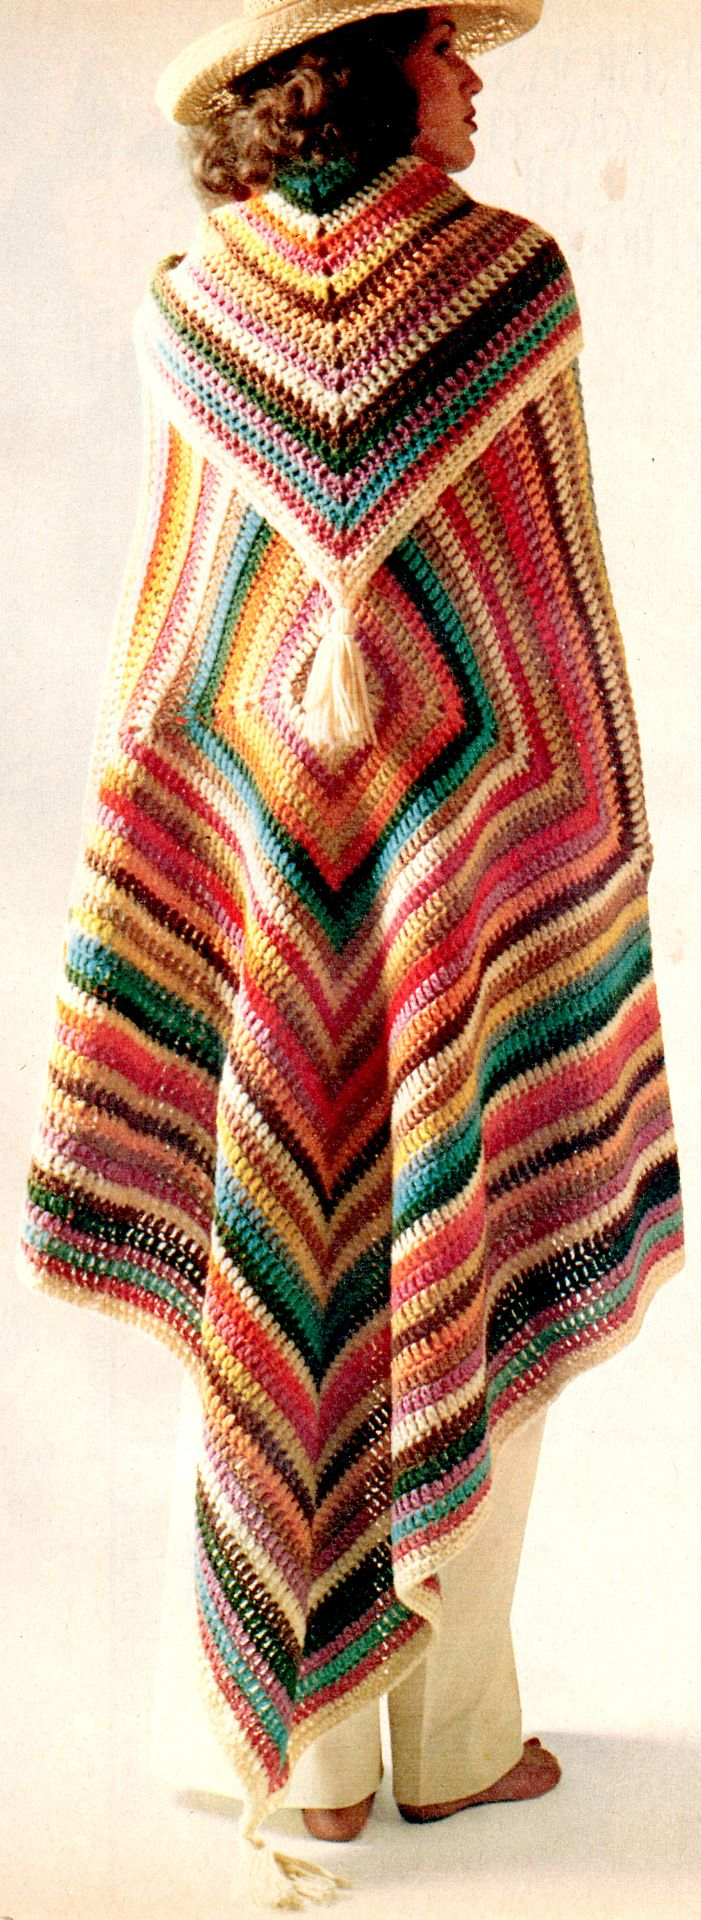 yellow, red, green, purple colour, very beautiful striped knit gown